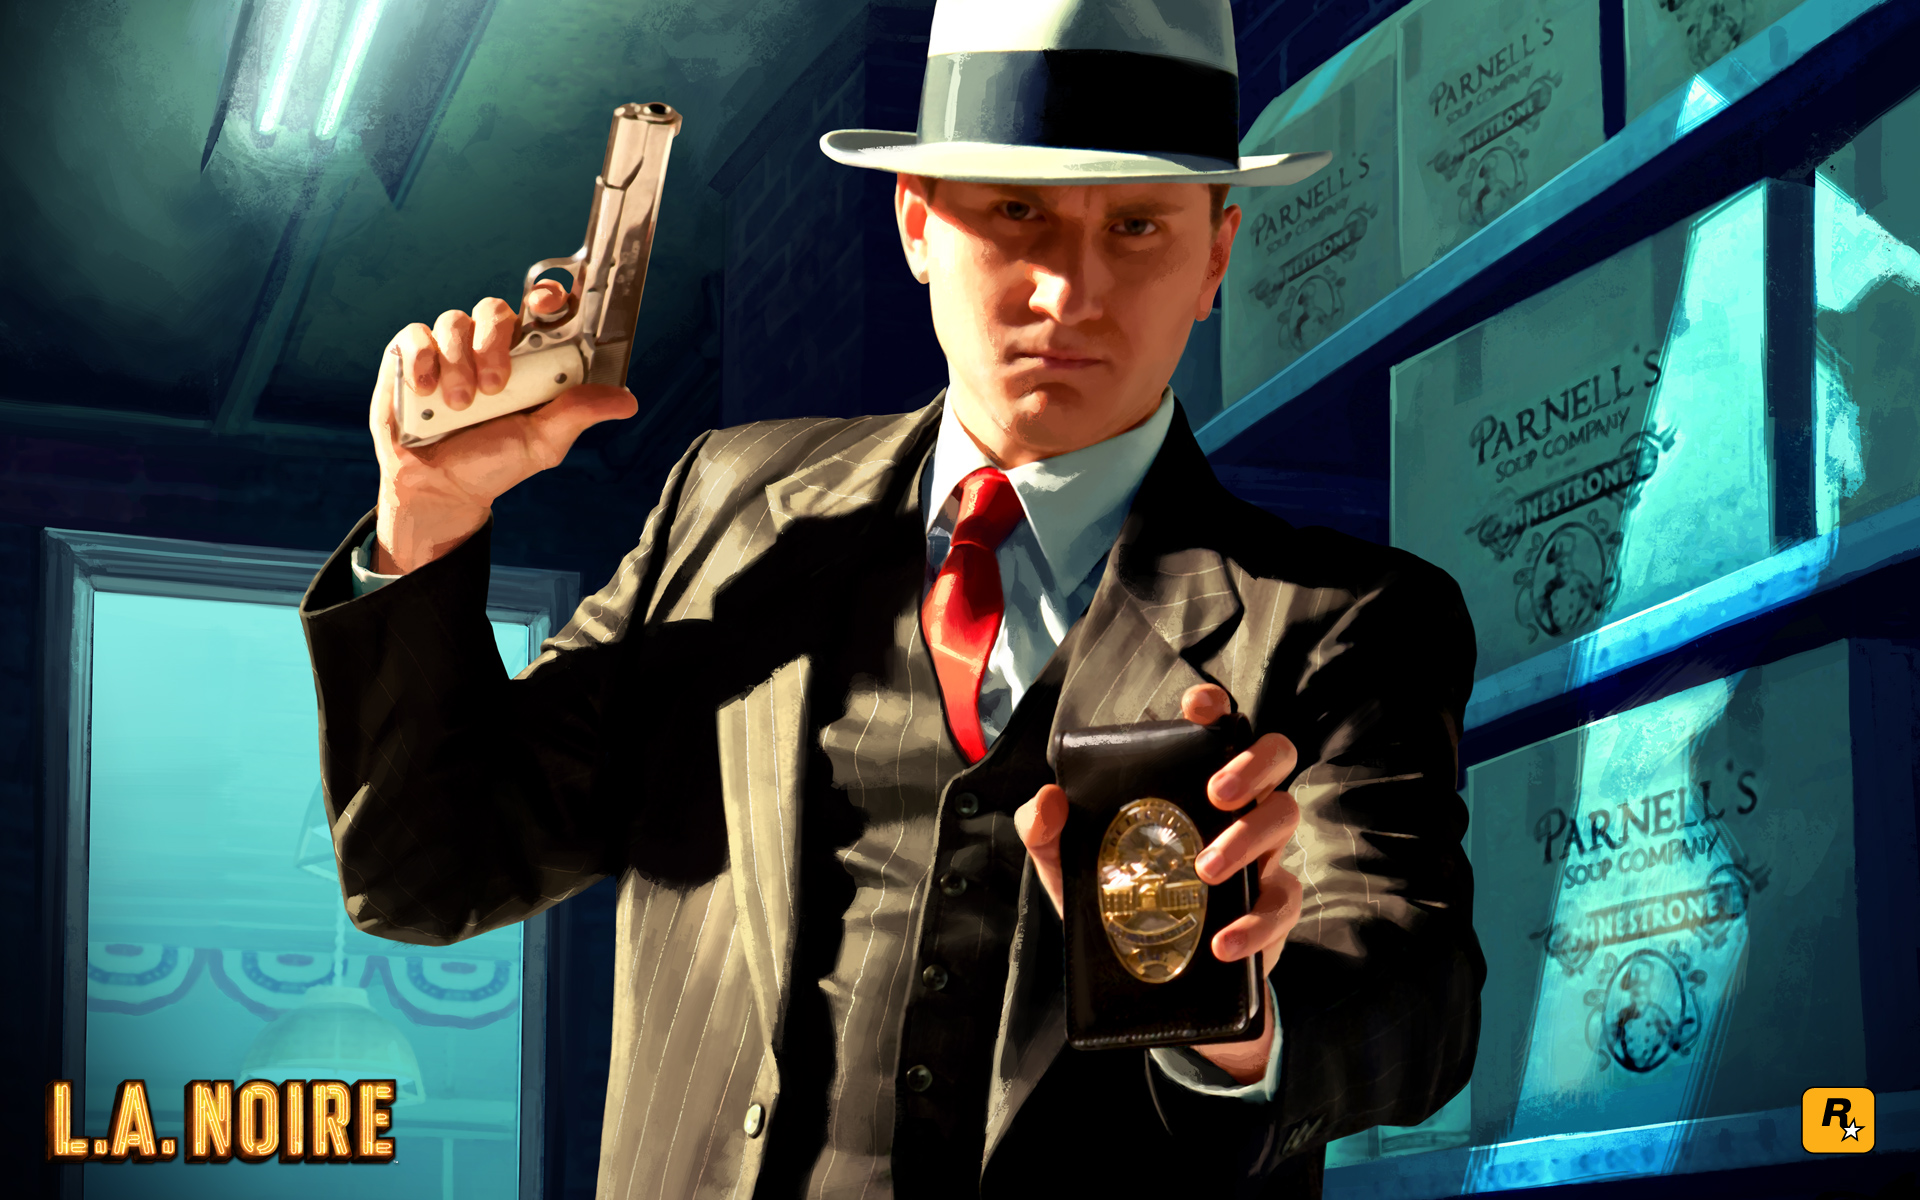 Rumor: Rockstar Releasing A Remaster Of LA Noire For VR